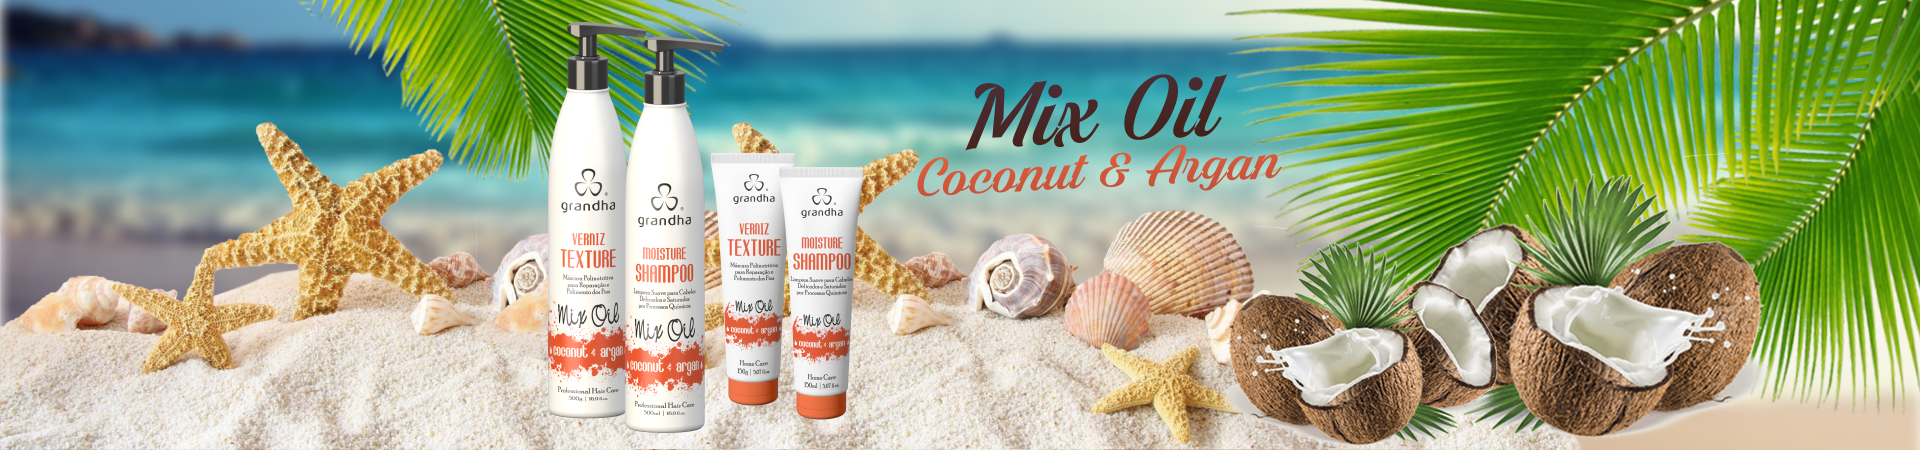 Mix Oil Coconut & Argan Grandha Primavera Verão 2016